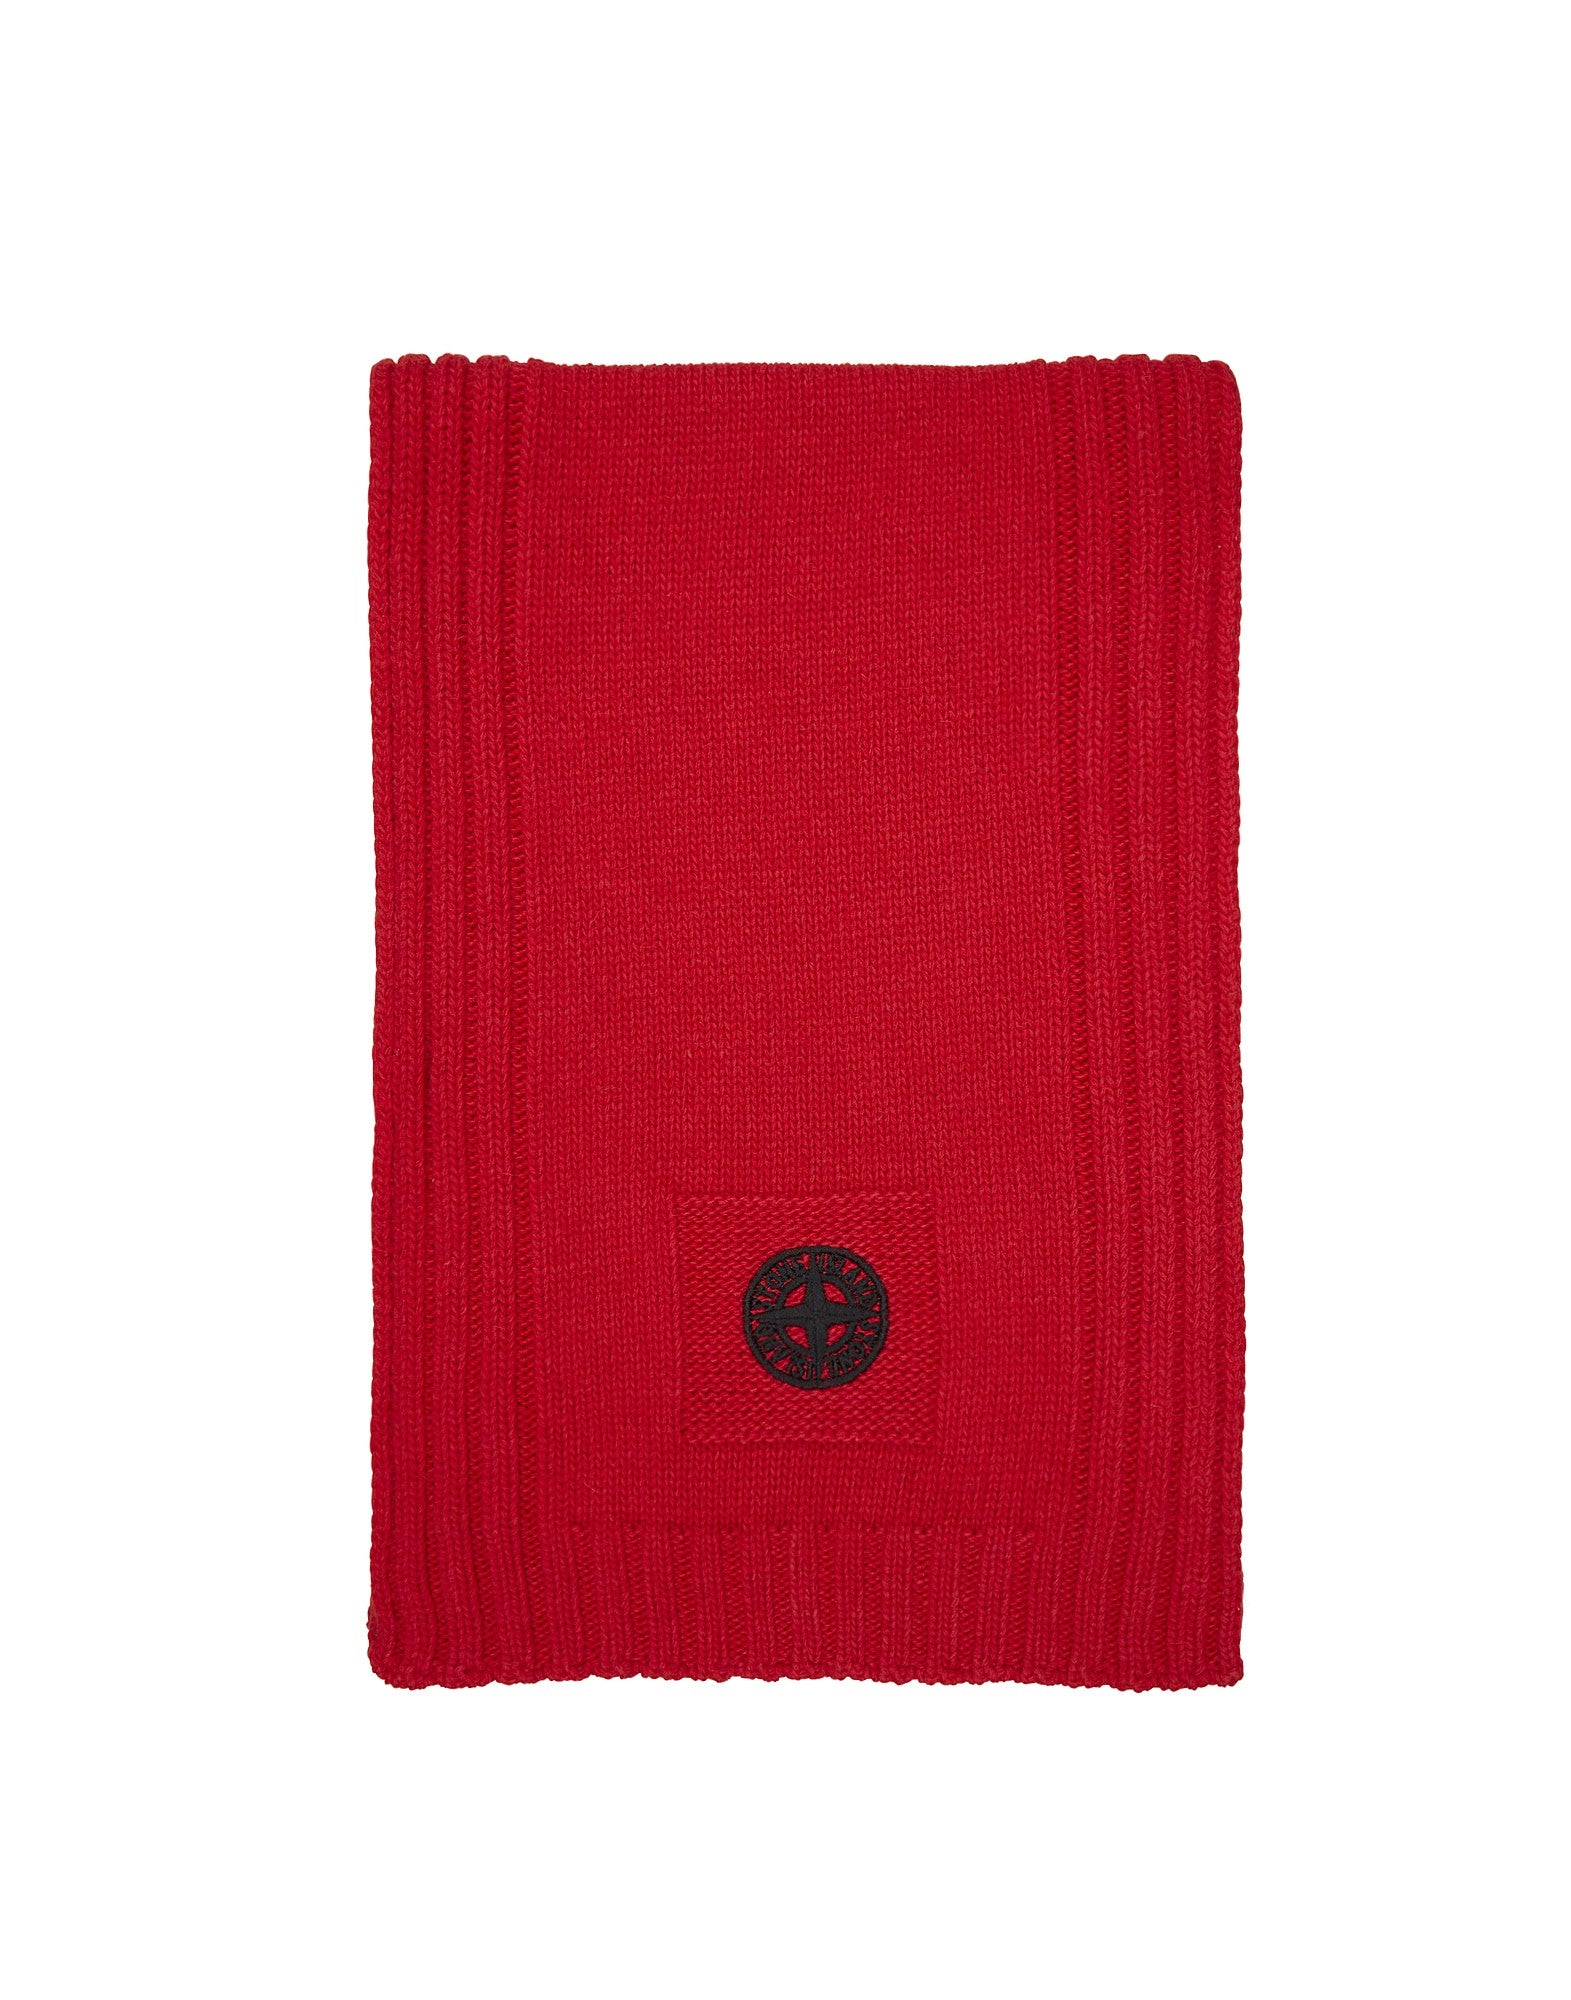 N05A6 Knitted Scarf in Red